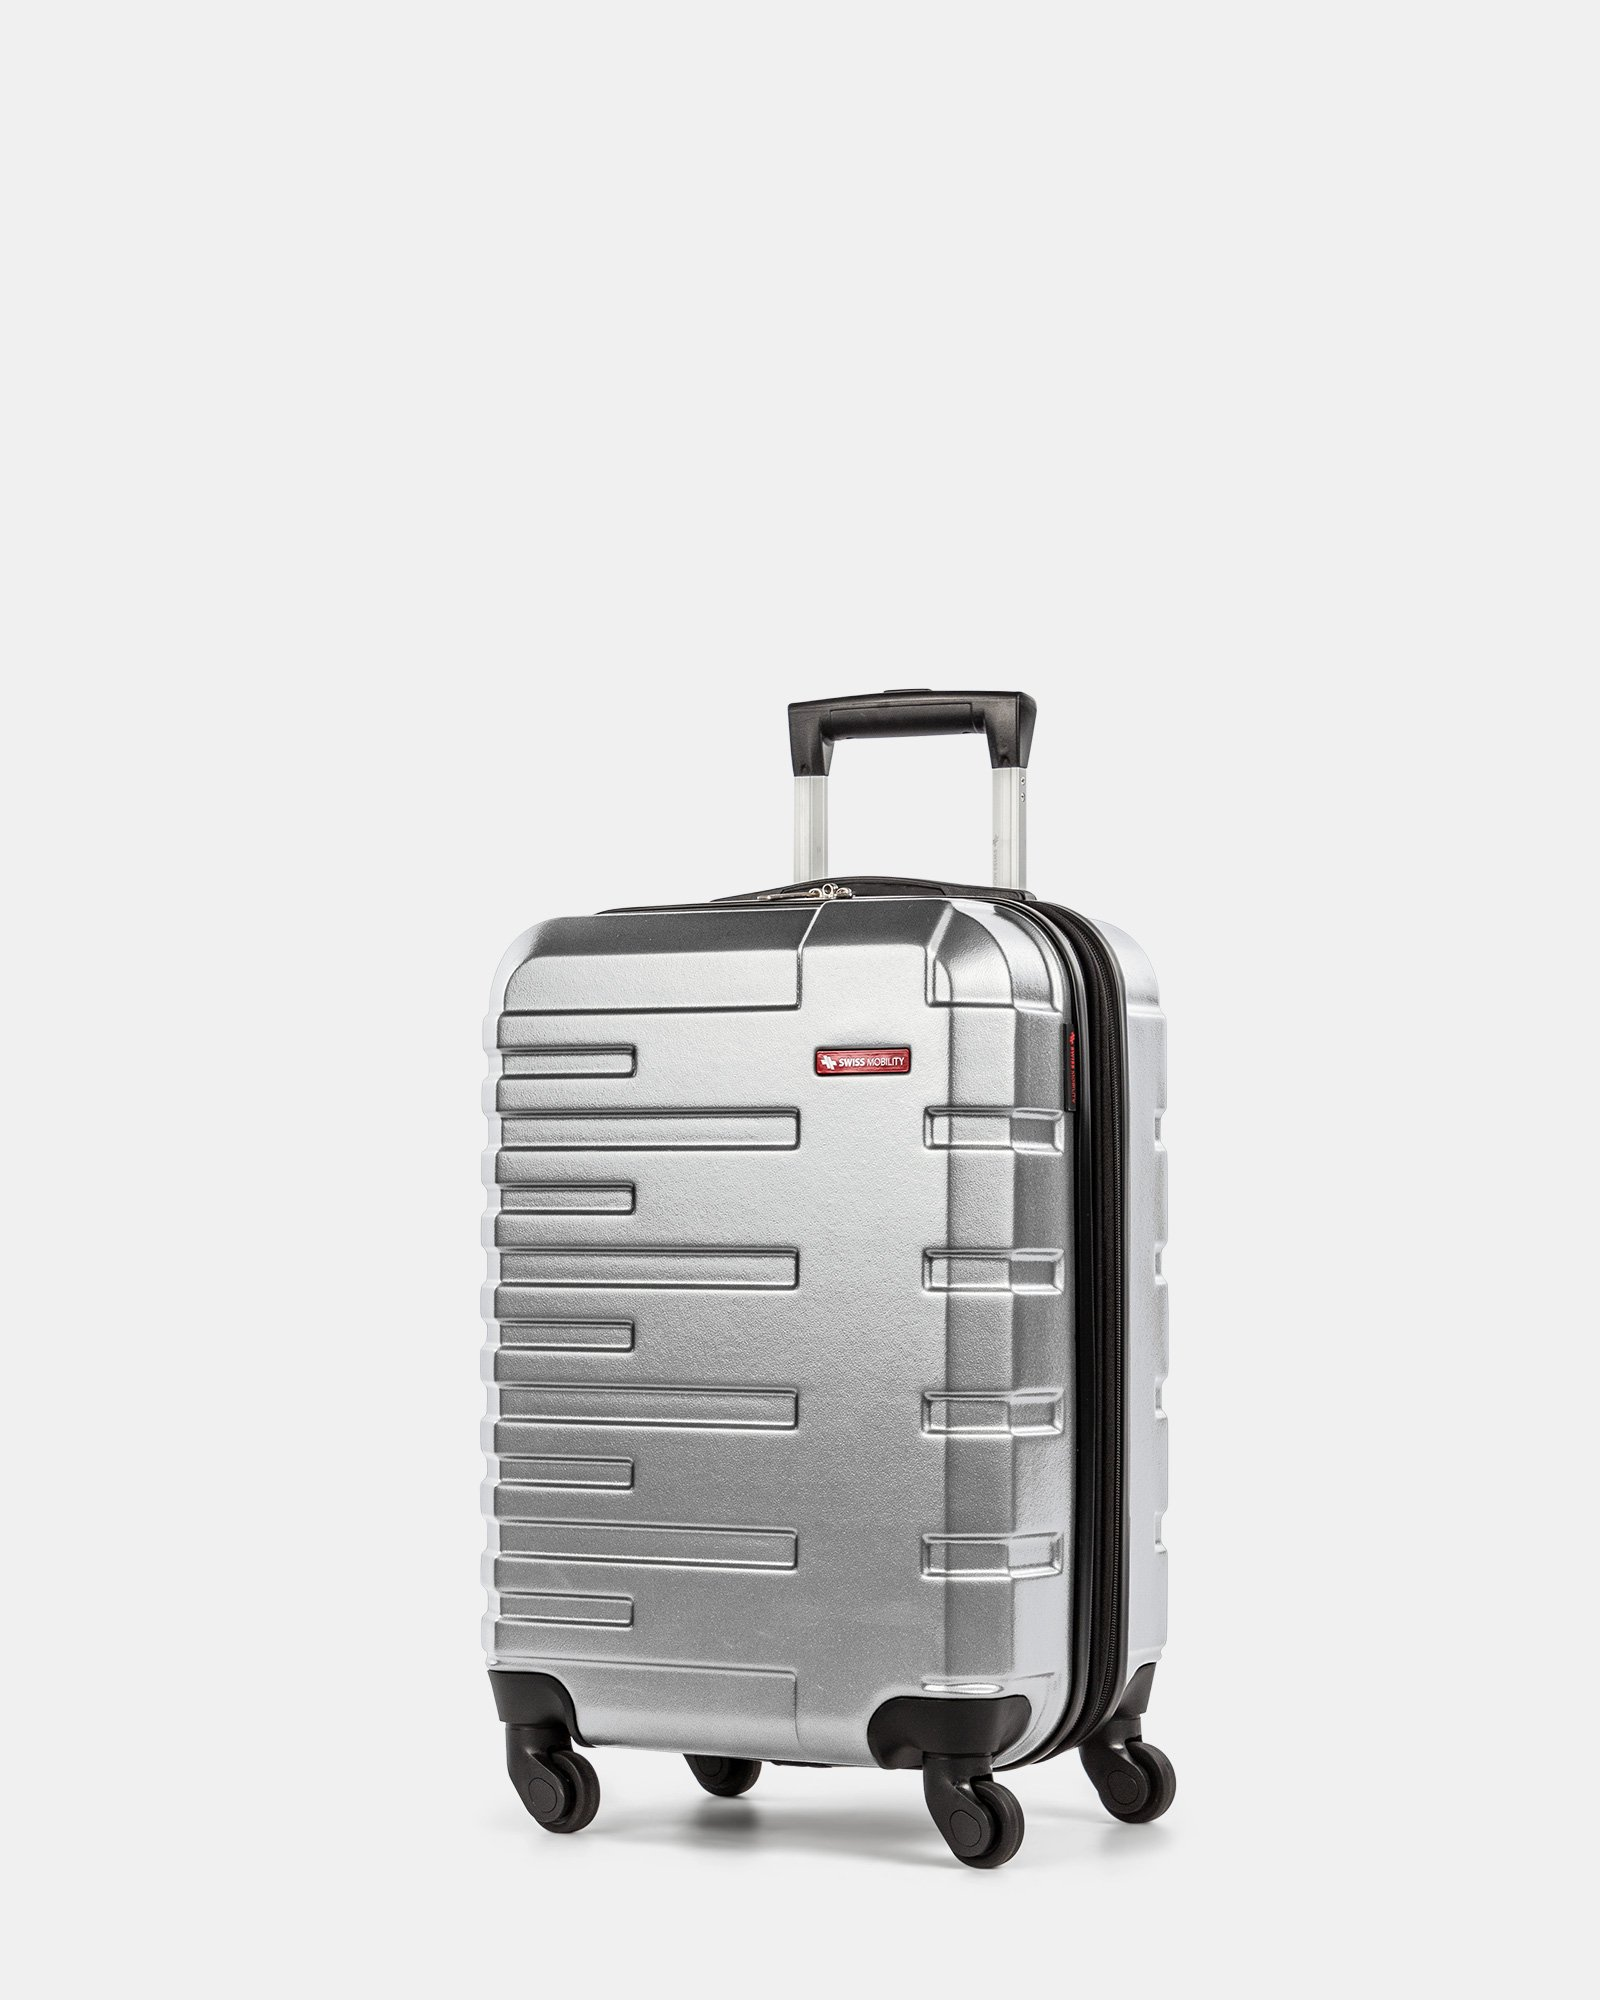 Quad - Lightweight Hardside Carry-on with Spinner wheels - Silver - Swiss Mobility - Zoom